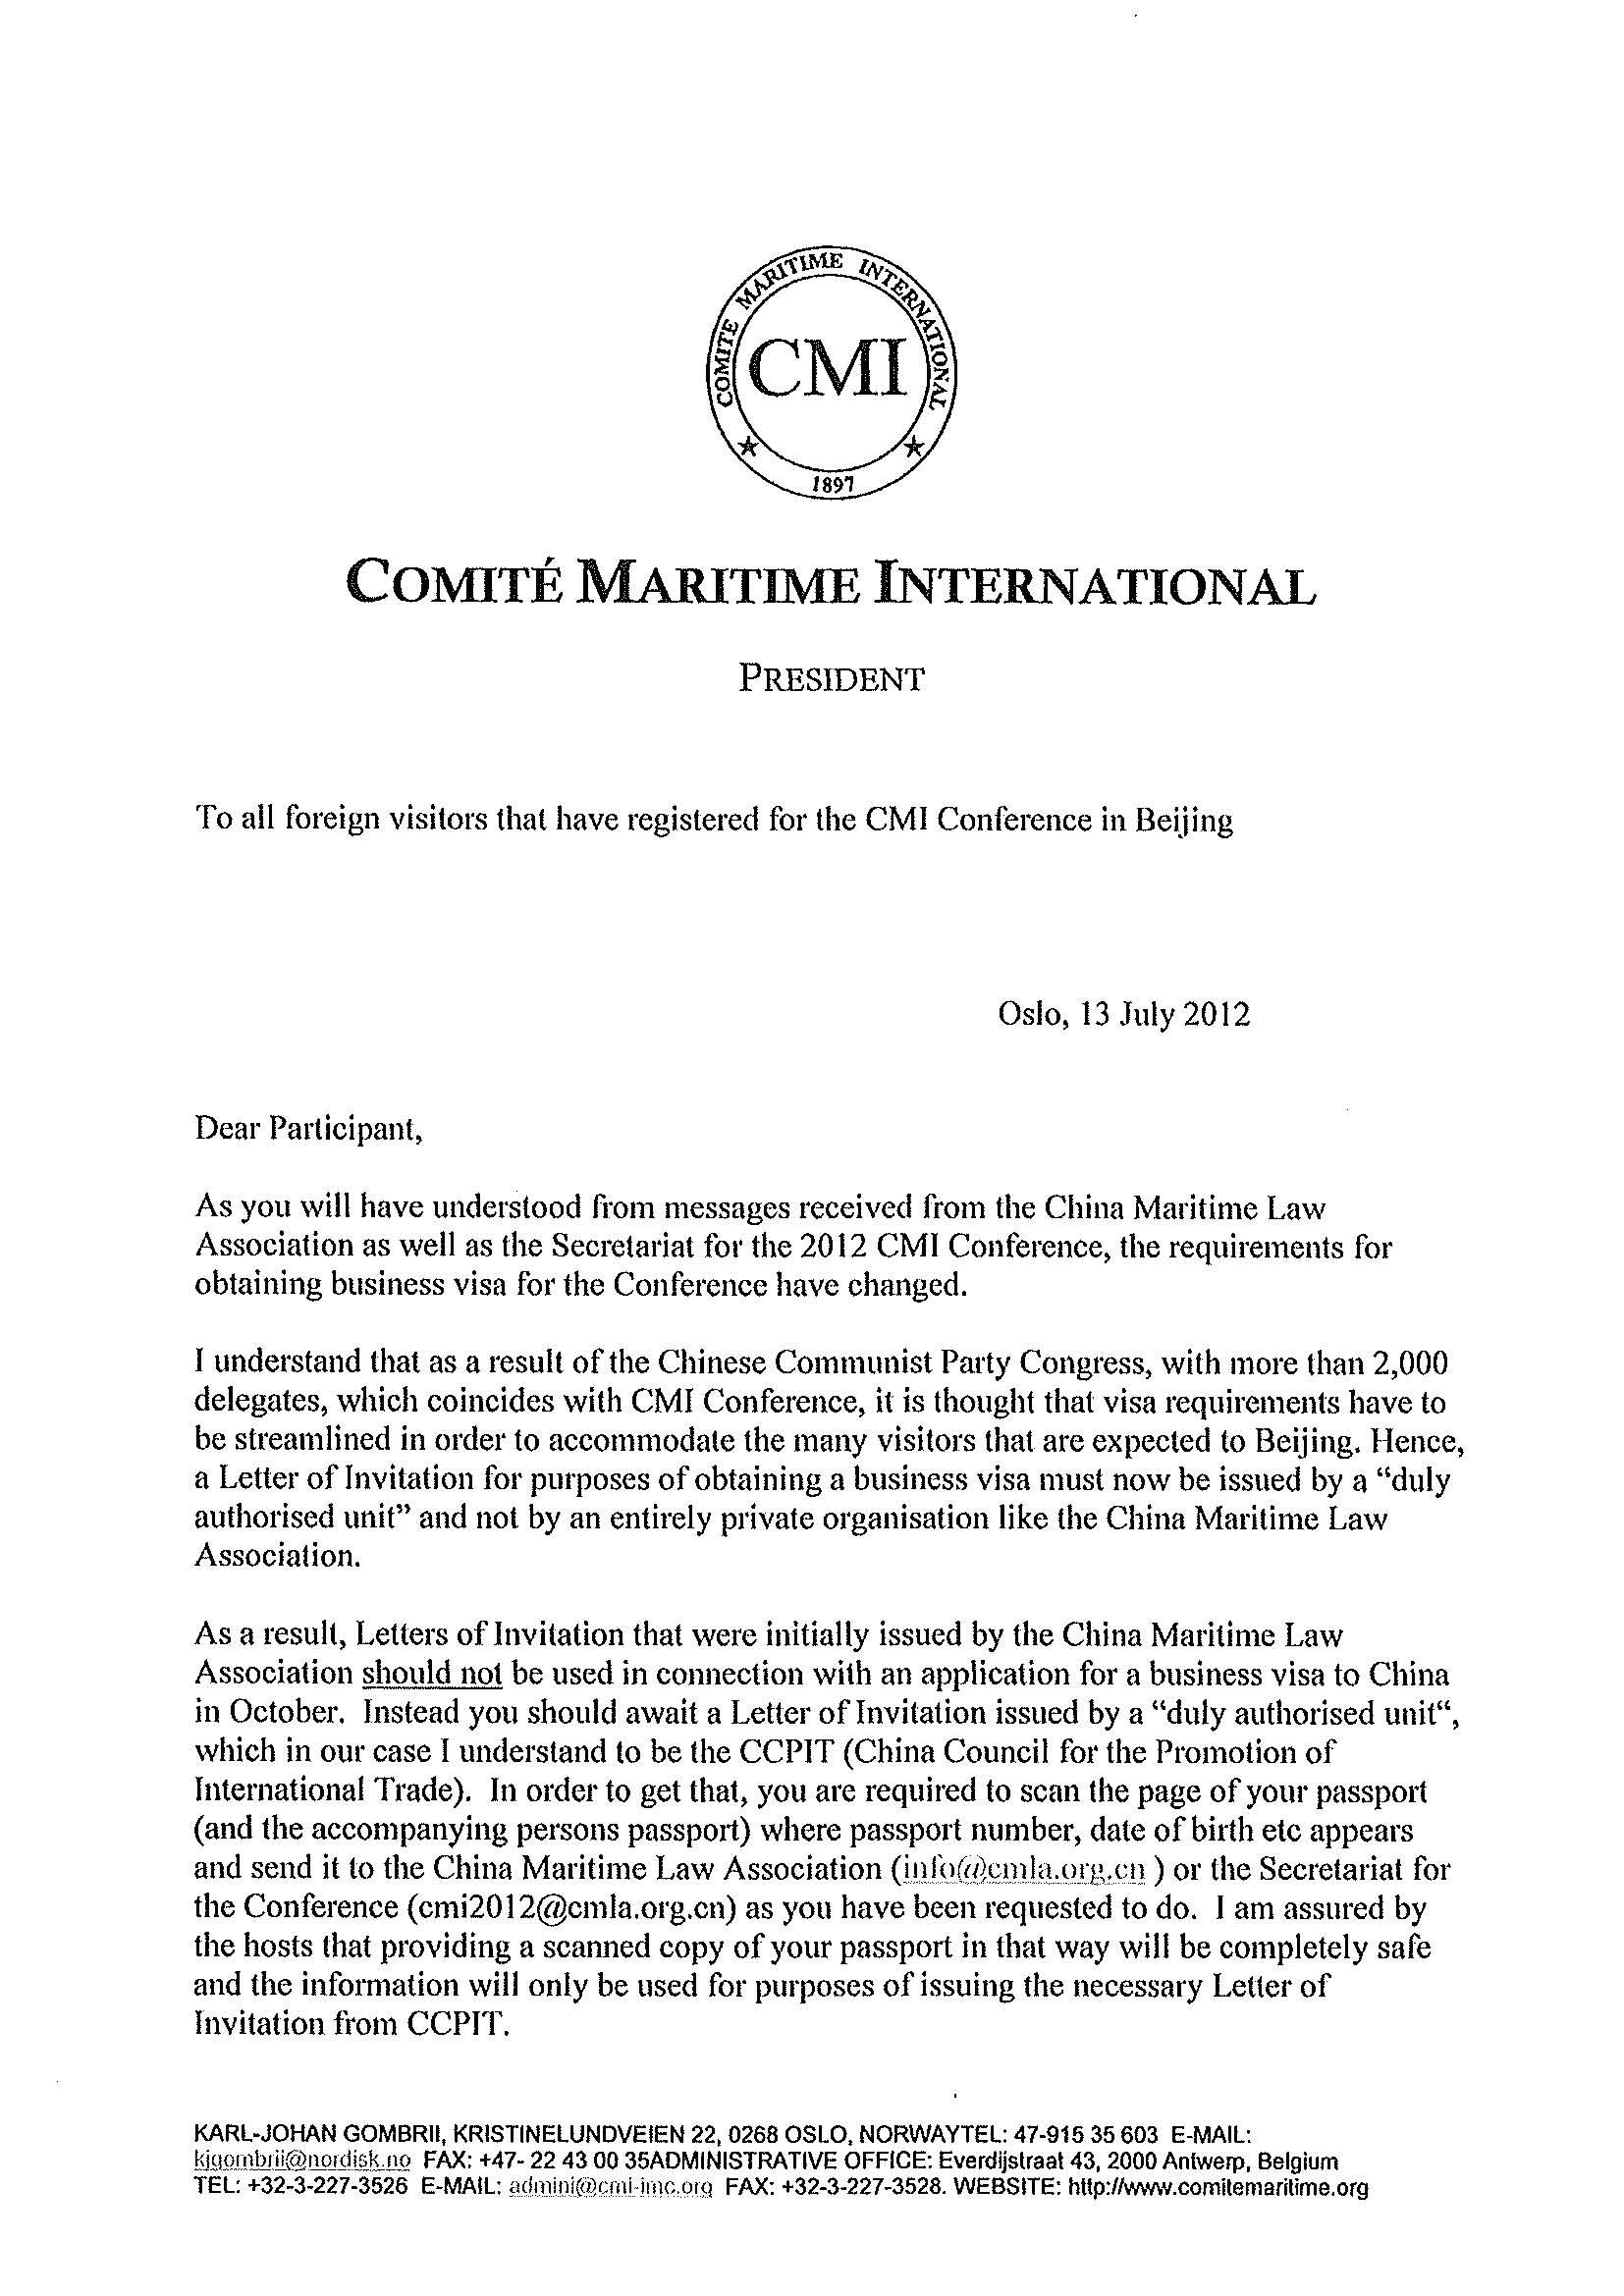 correspondence from the president comite maritime internationalvisa application letter